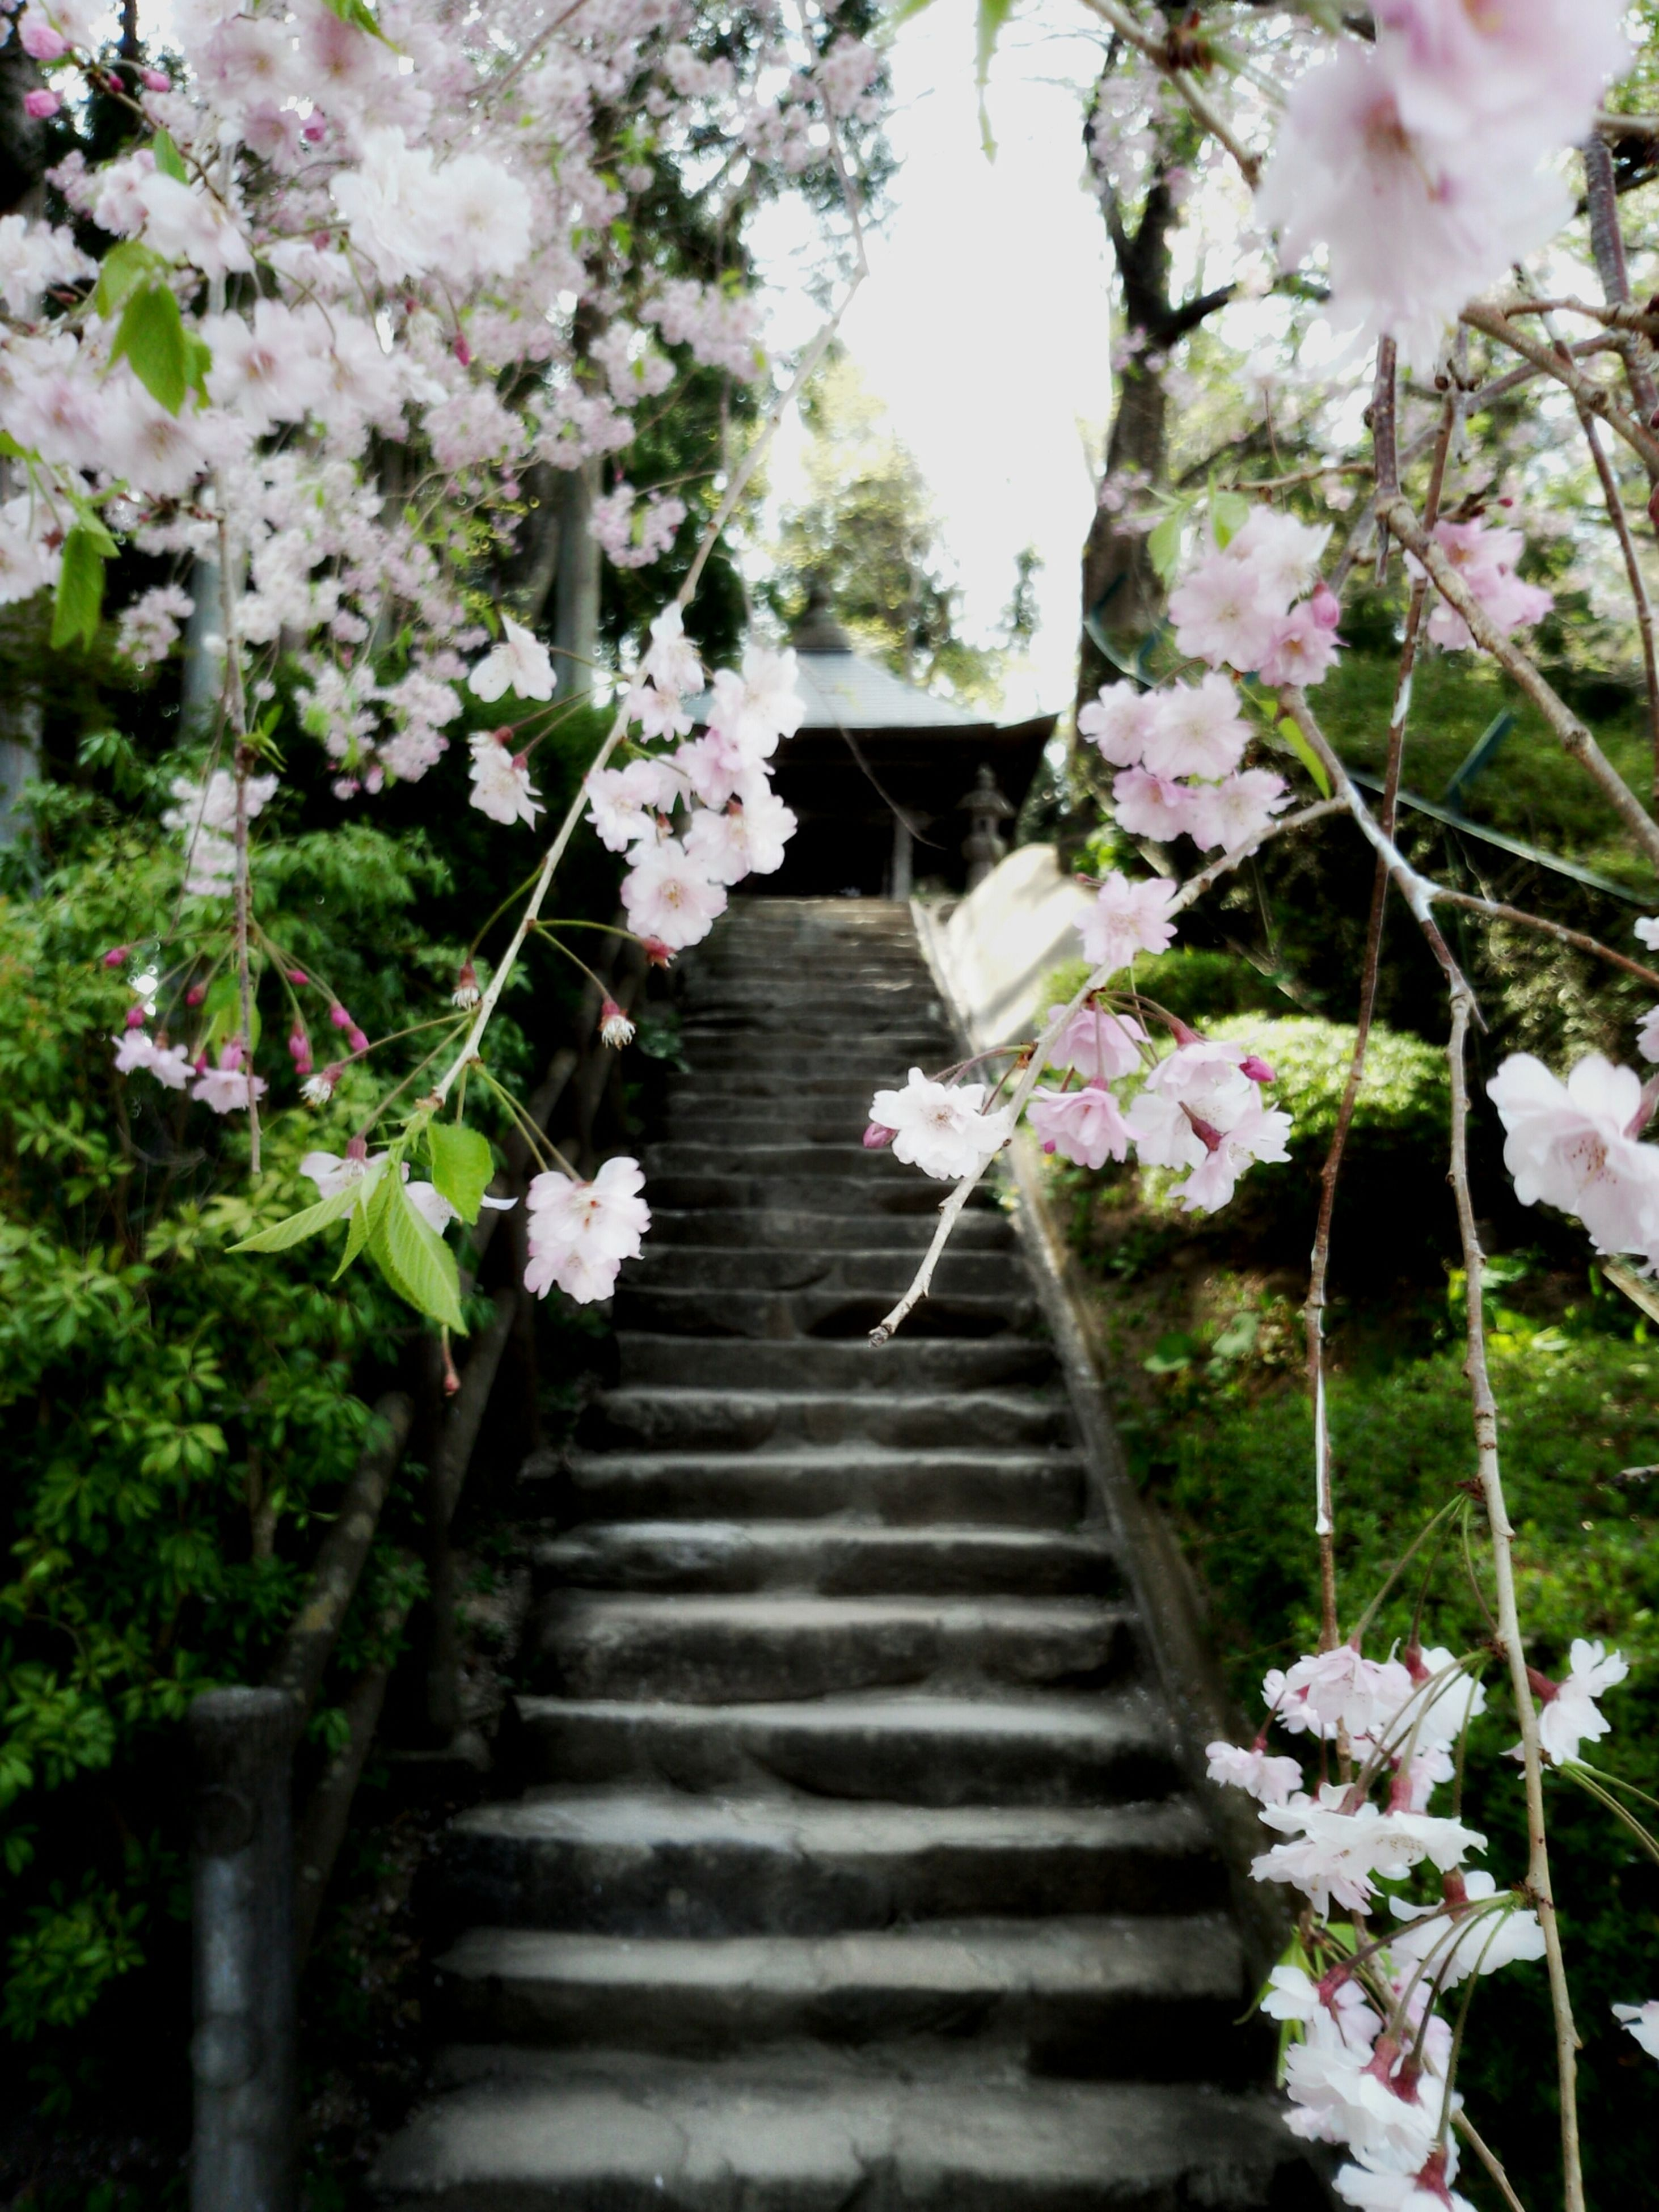 flower, freshness, growth, fragility, plant, blossom, nature, beauty in nature, tree, steps, branch, blooming, pink color, in bloom, petal, the way forward, built structure, steps and staircases, staircase, railing